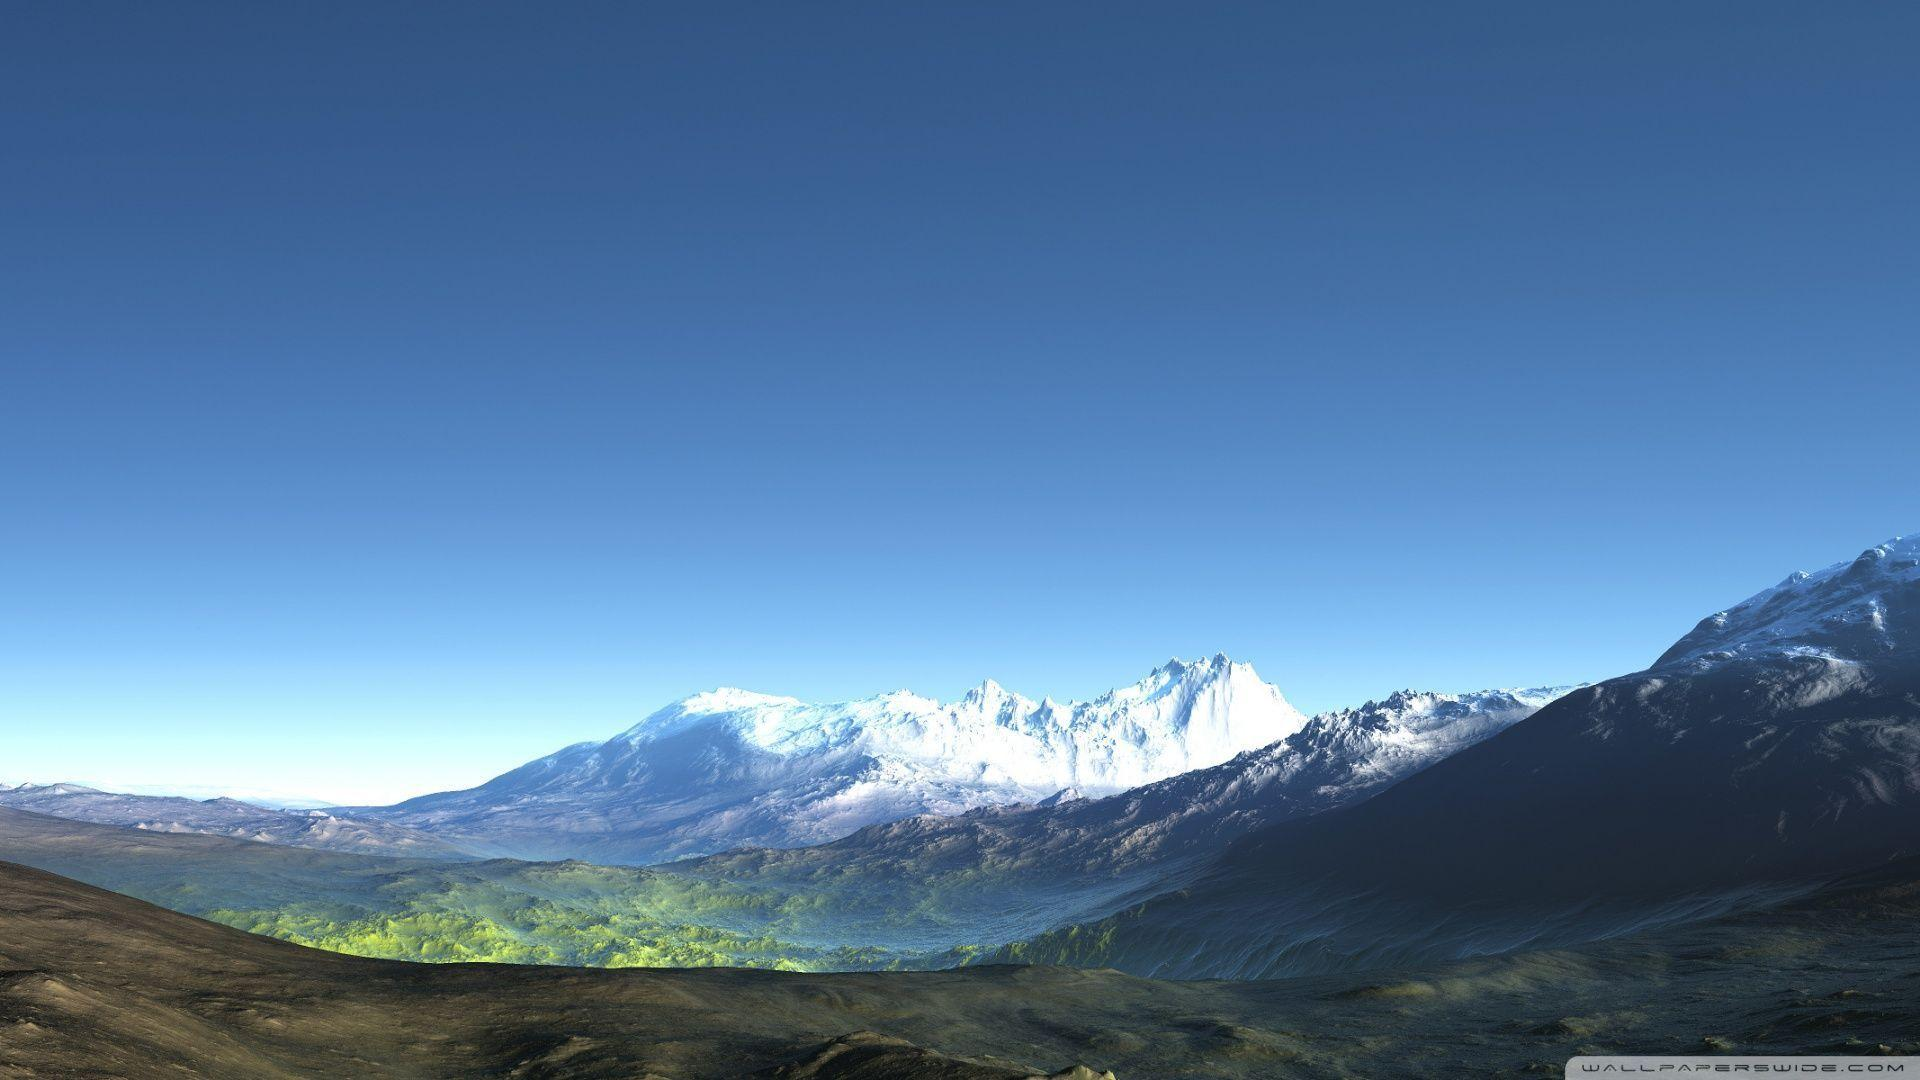 3d mountain wallpaper - photo #4